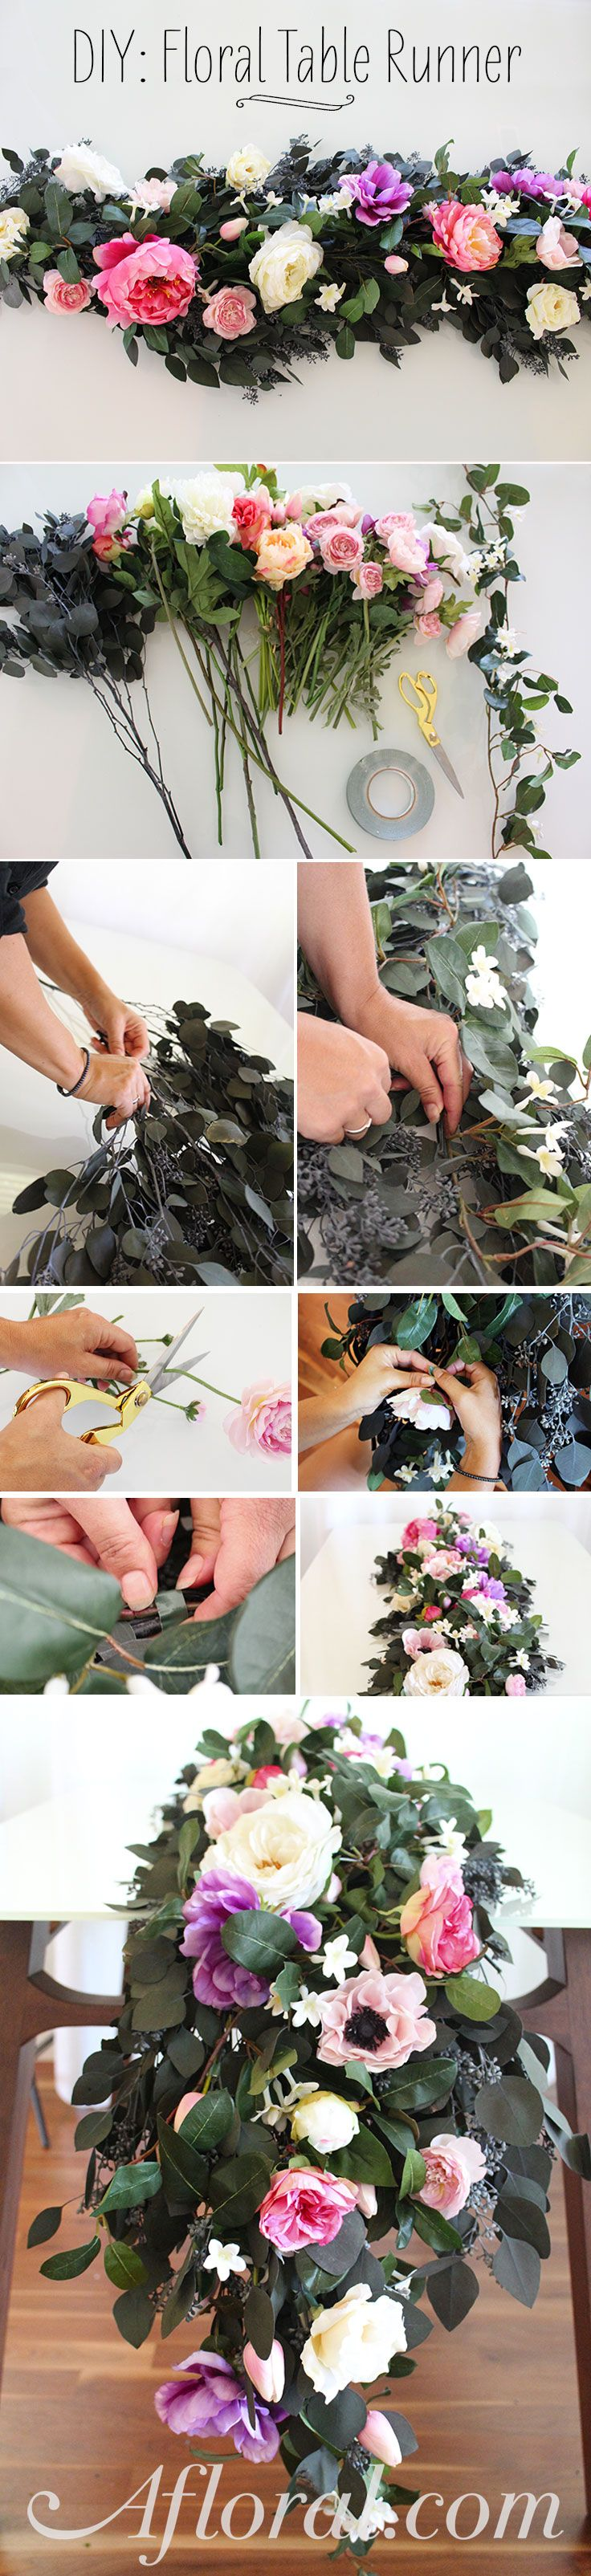 Make your own floral table runner for your DIY wedding with silk flowers and preserved greenery from afloral.com. #diywedding